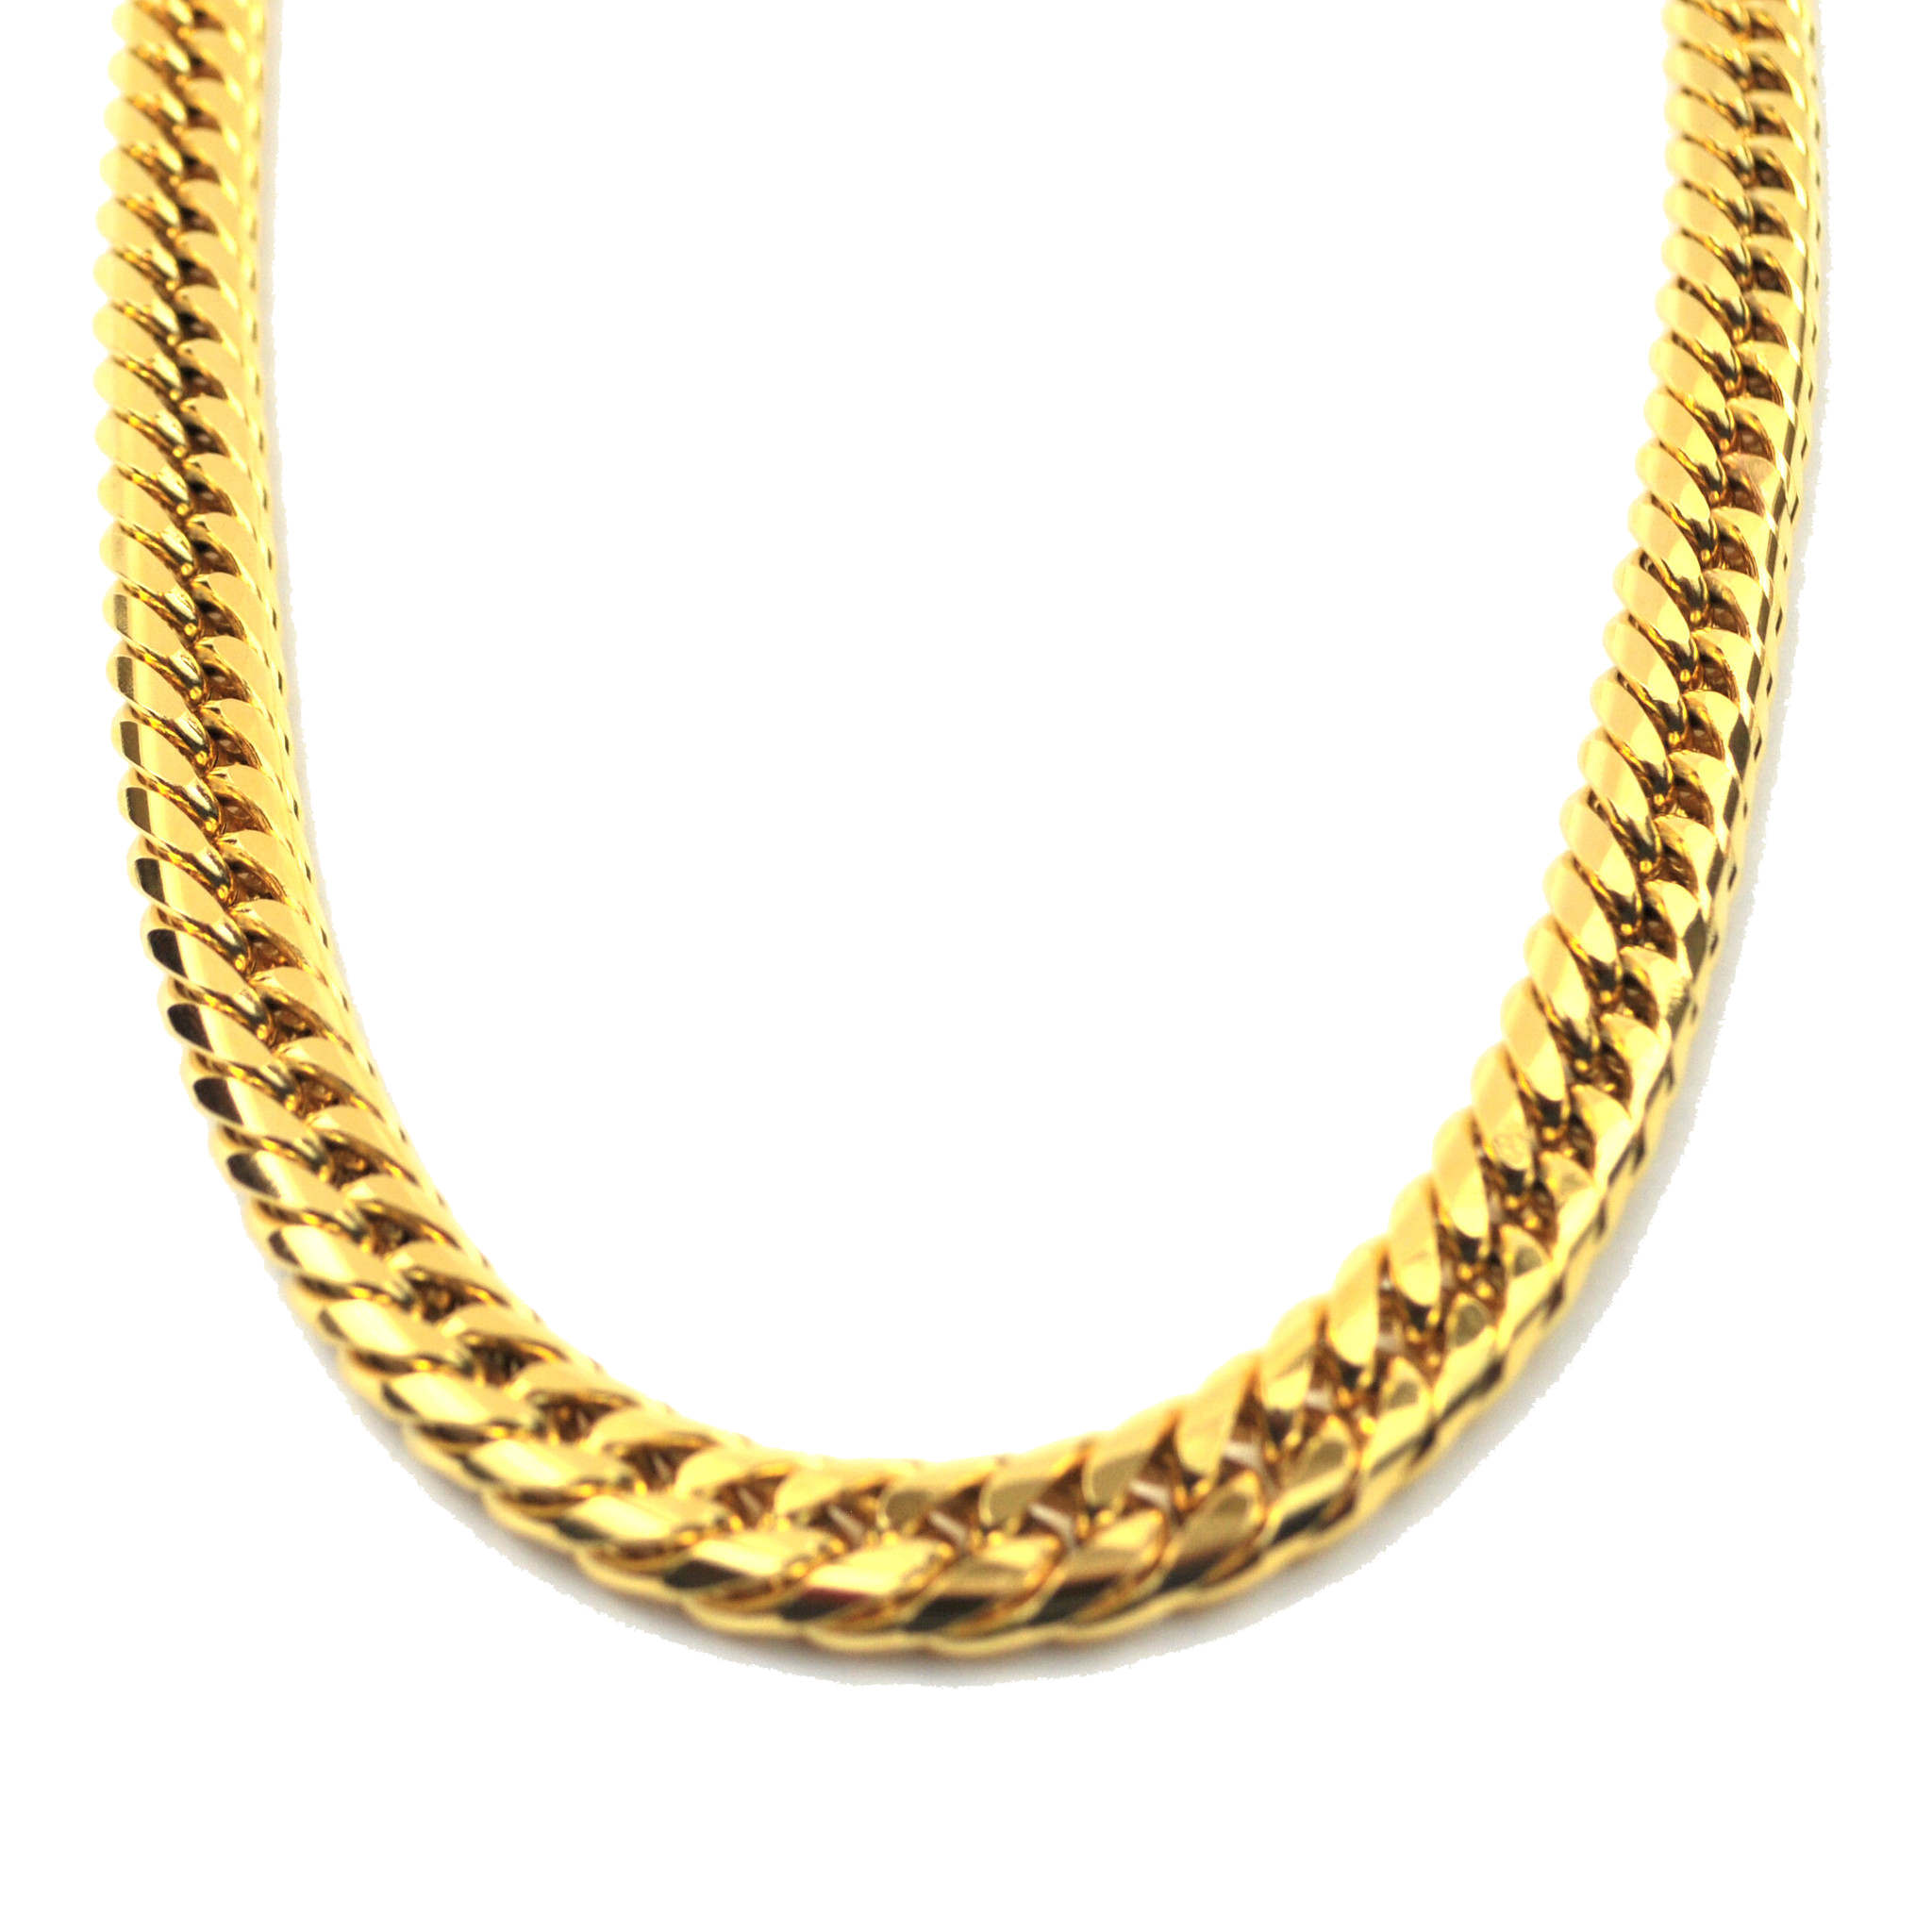 Free Thug Life Chain Png, Download Free Clip Art, Free Clip.